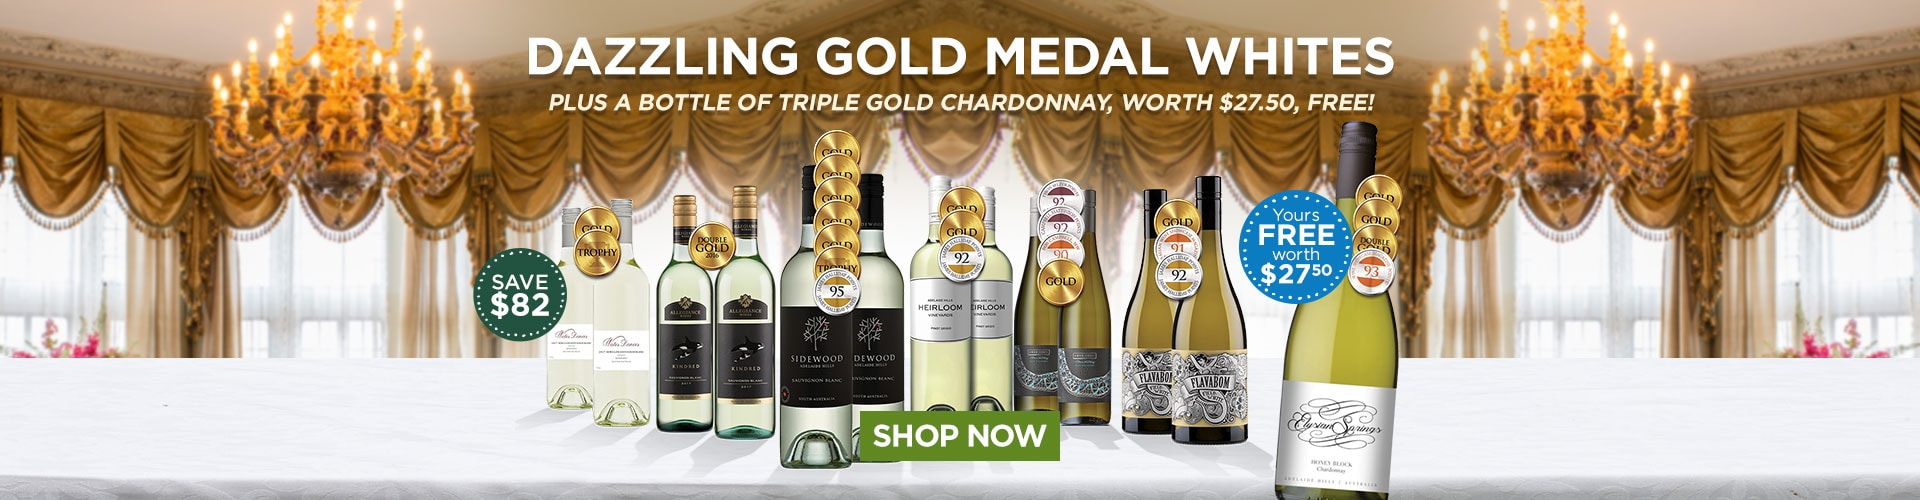 Dazzling Gold-medal Whites plus a bottle of TRIPLE GOLD Chardonnay, worth $27.50, FREE! - Shop Now